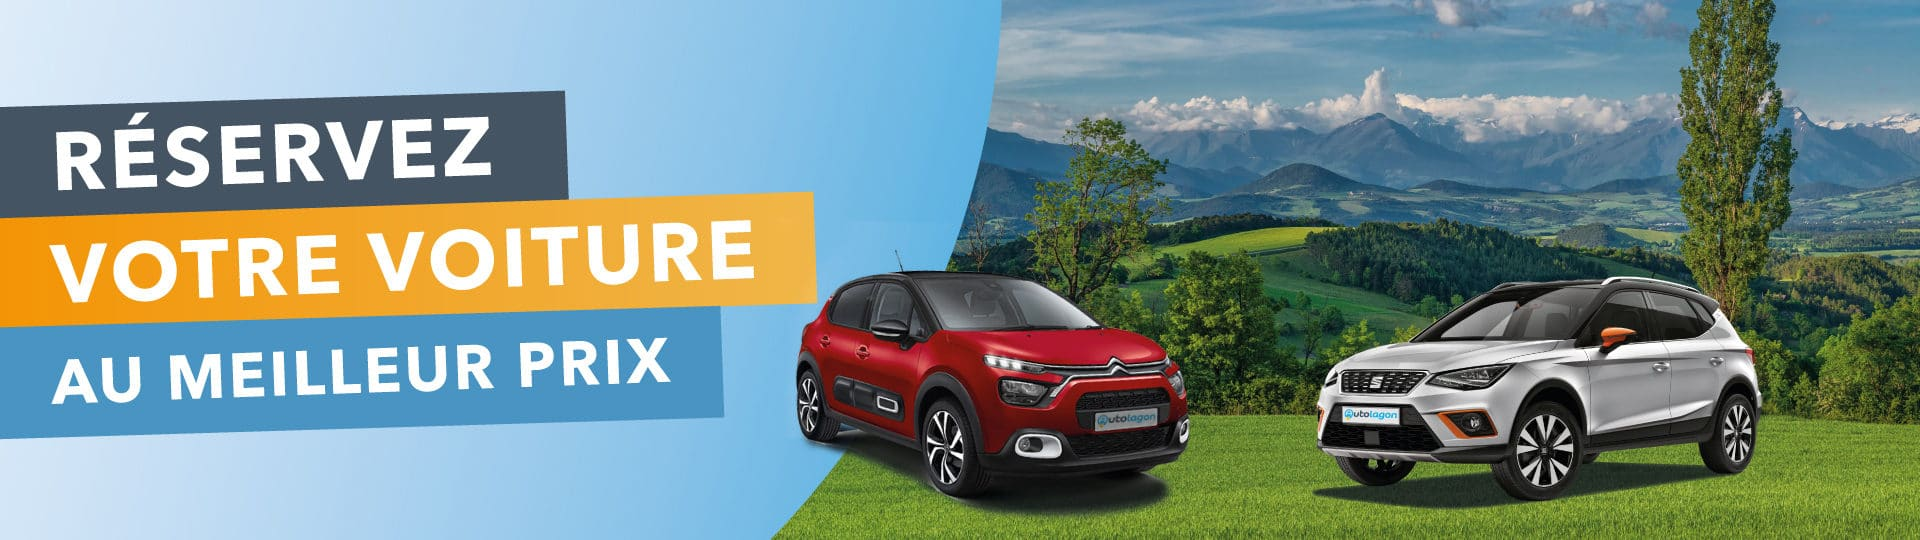 Book your electric vehicle